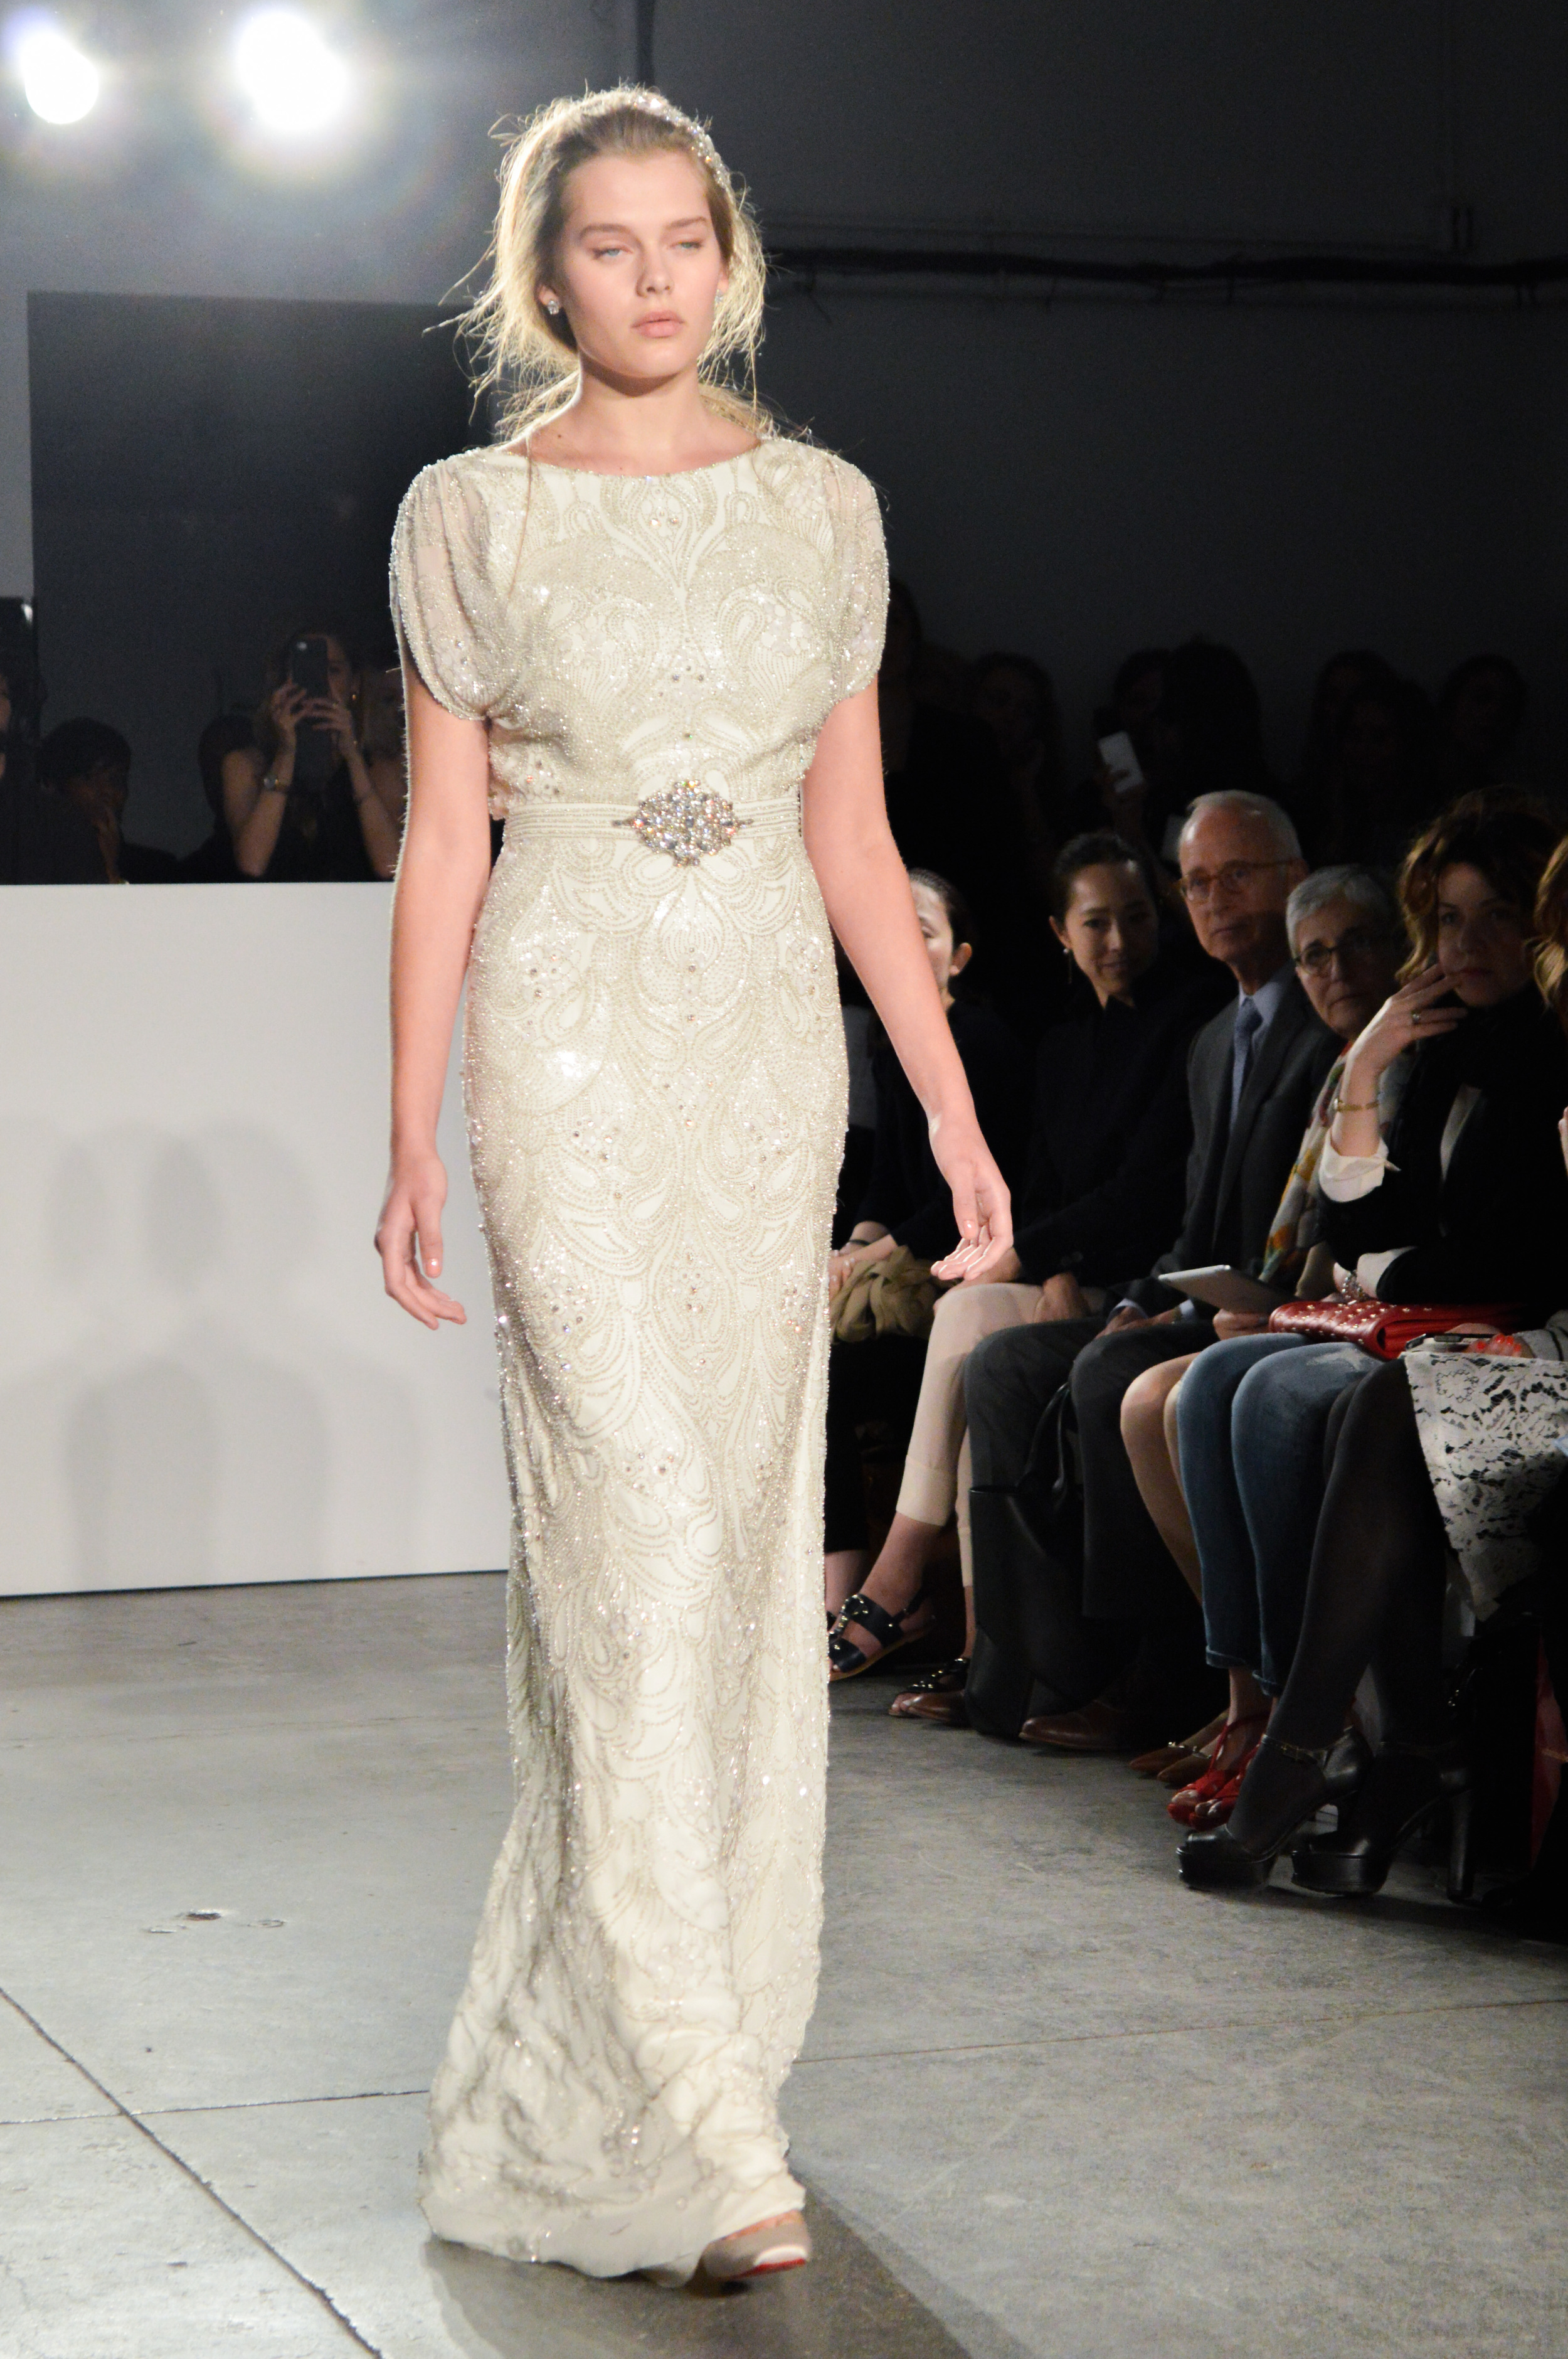 JennyPackham_Bridal Market April 2014-13